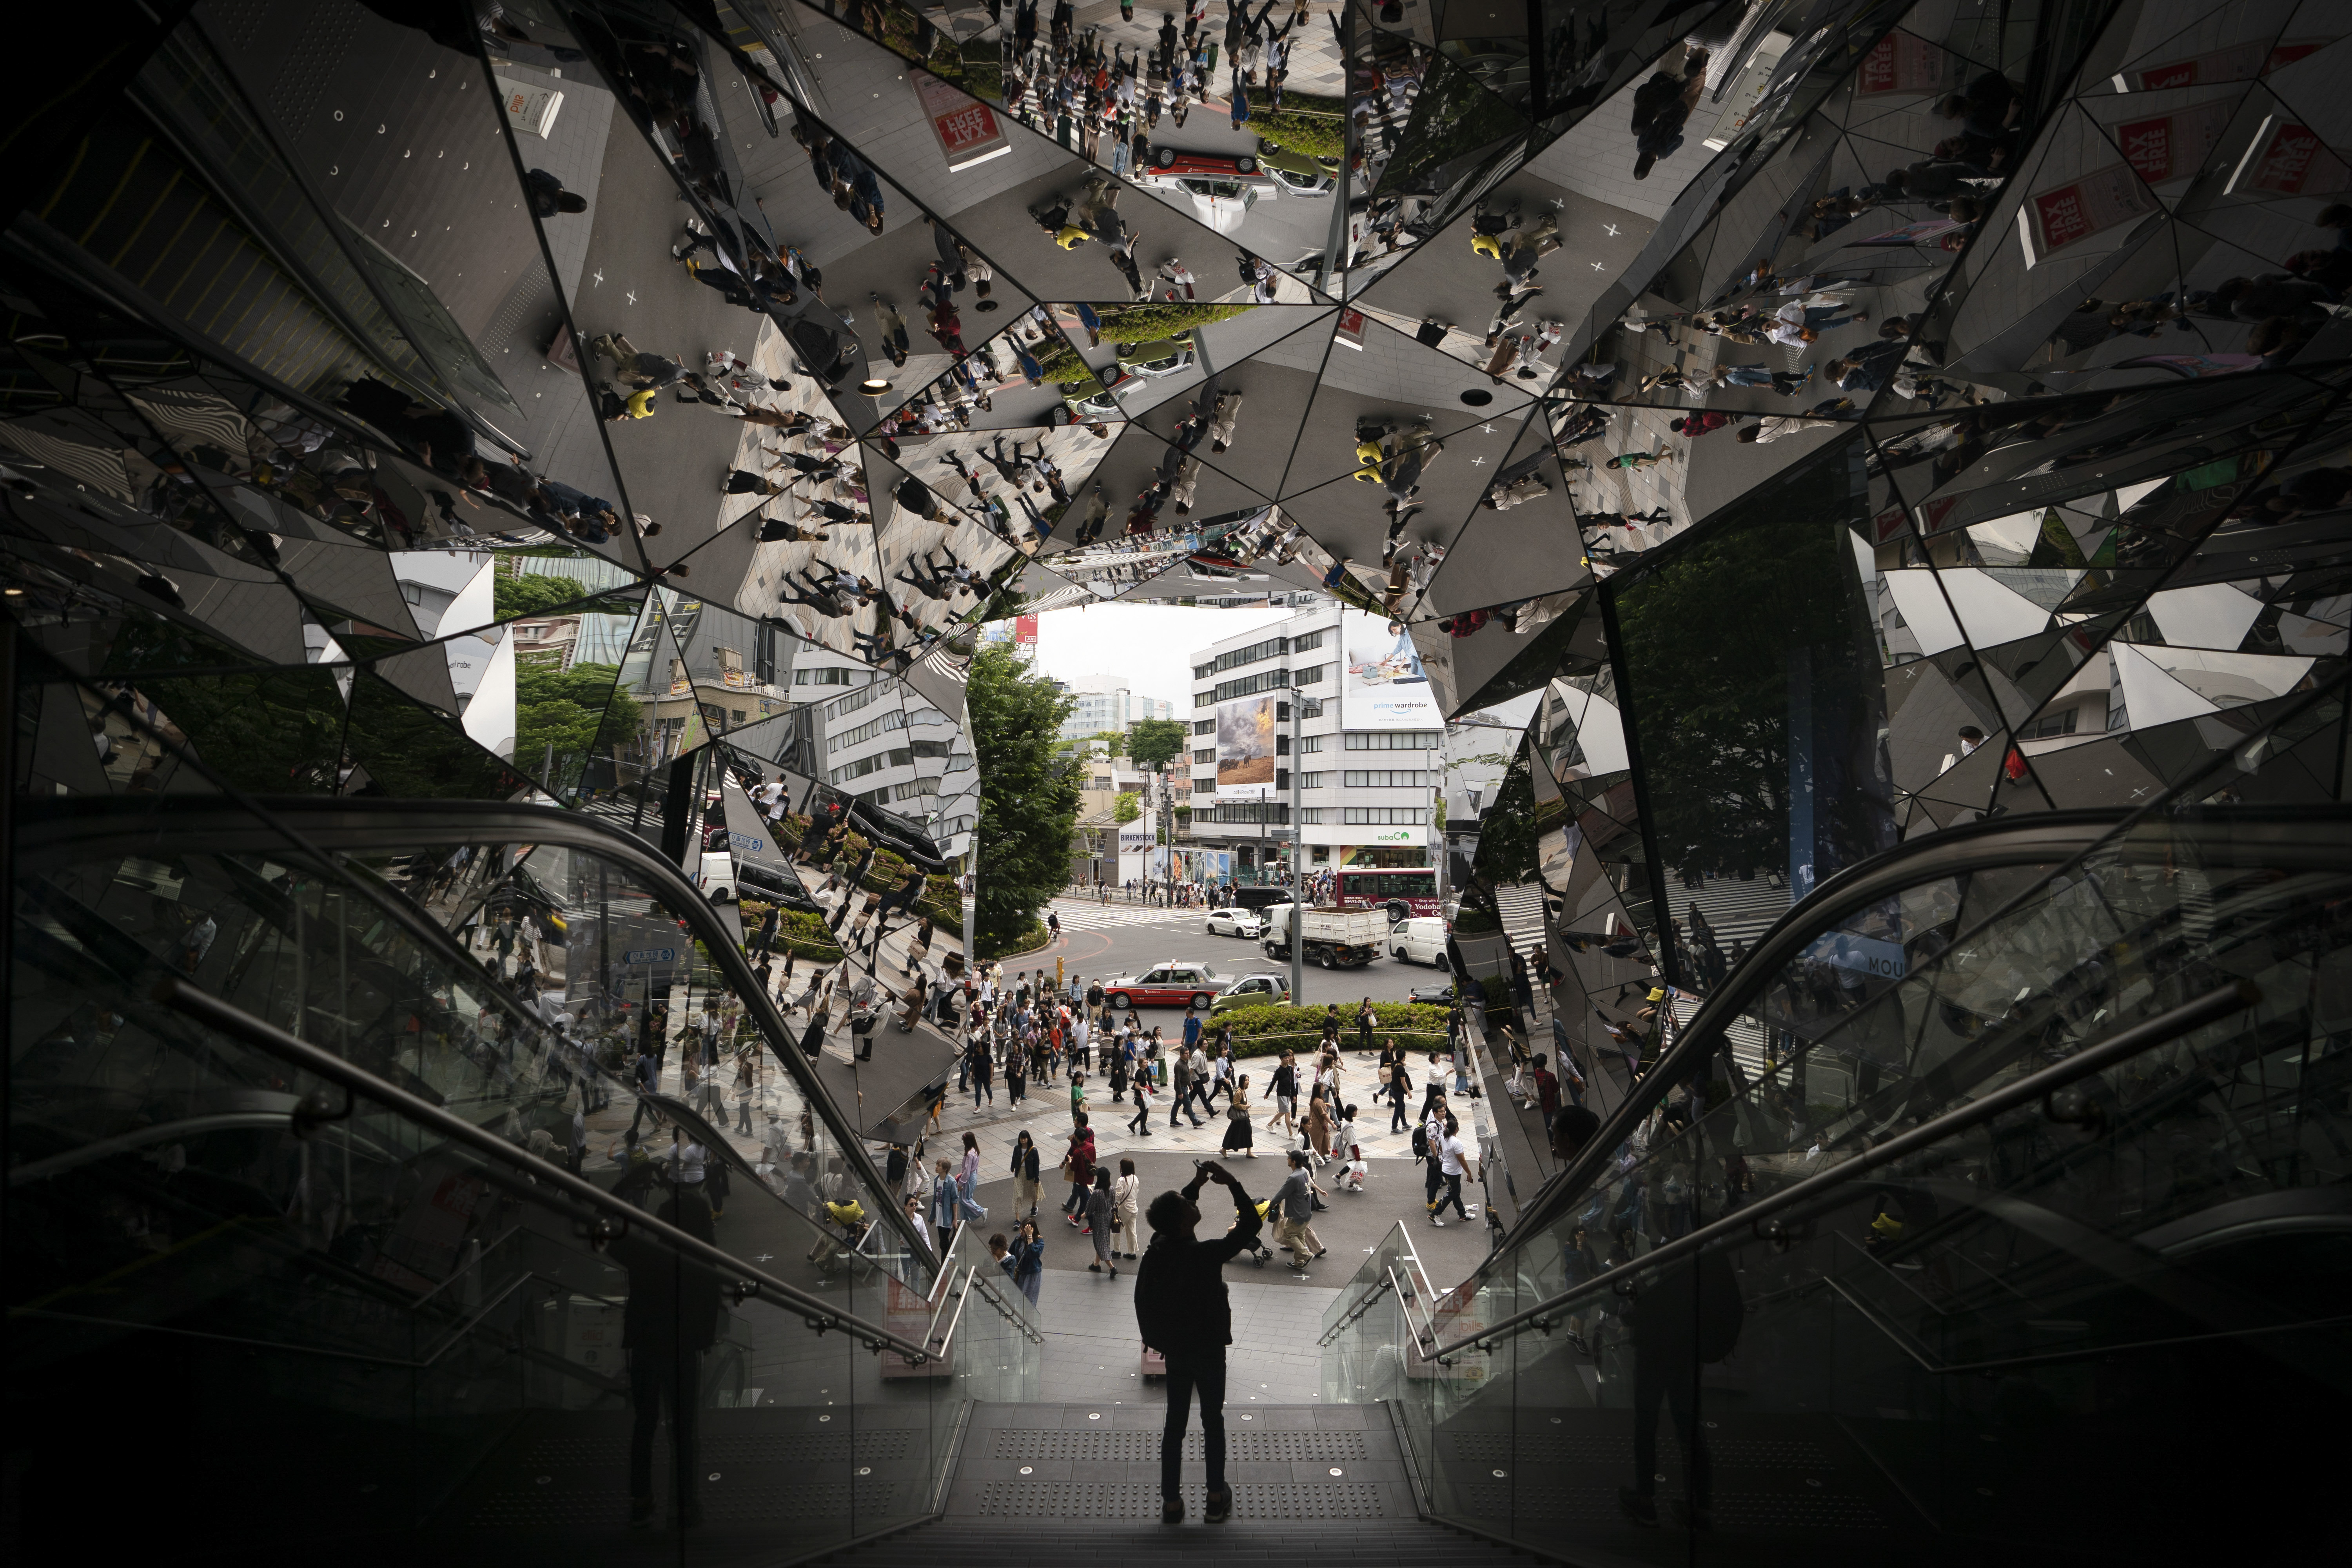 A tourist takes pictures in the entrance way to a shopping mall decorated with mirrors Saturday, May 18, 2019, in Harajuku district of Tokyo. (AP Photo/Jae C. Hong)